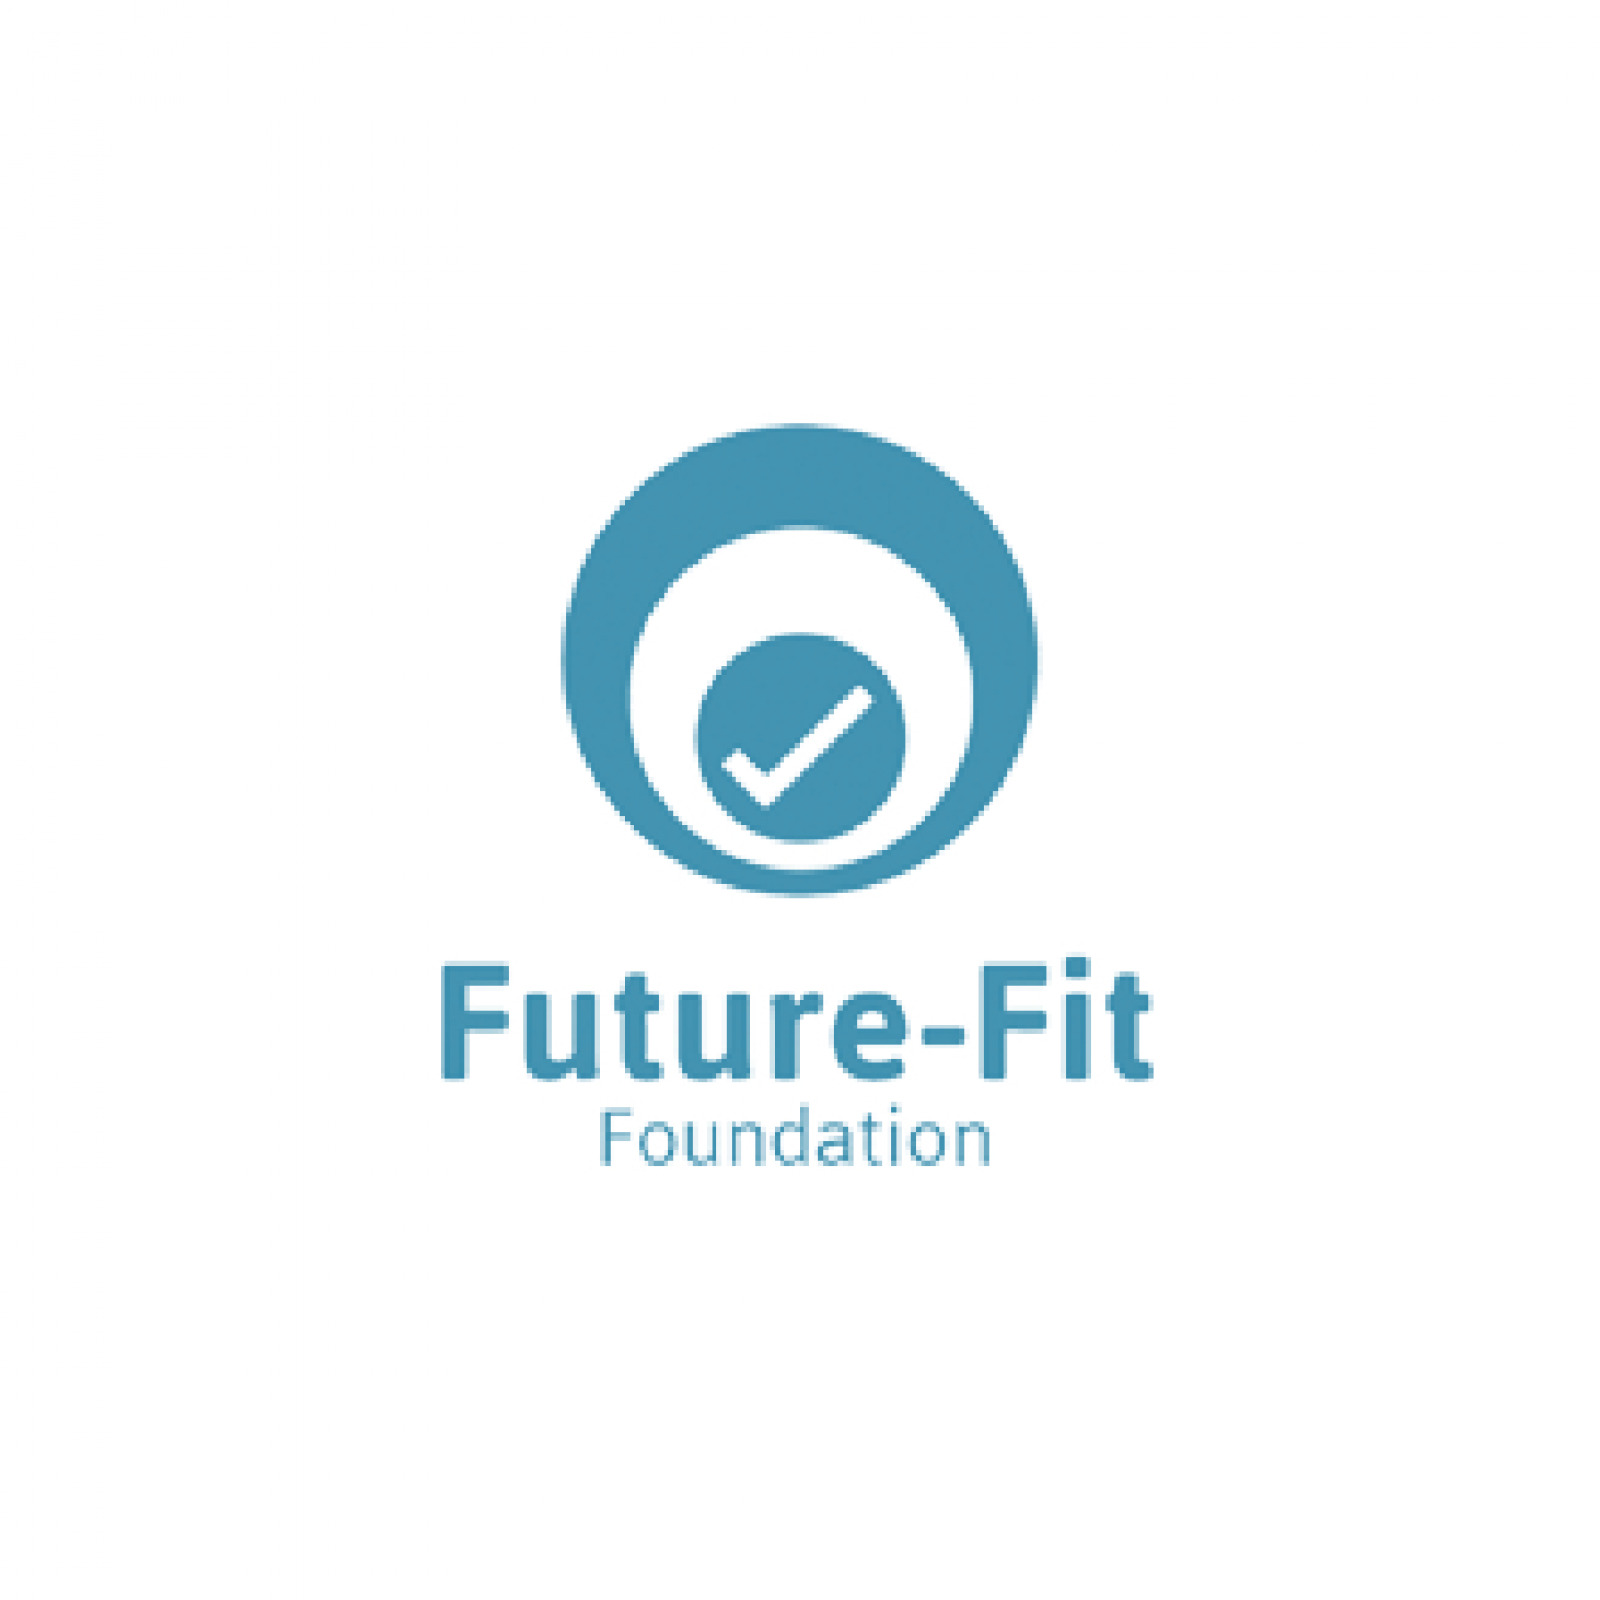 Future-Fit Foundation